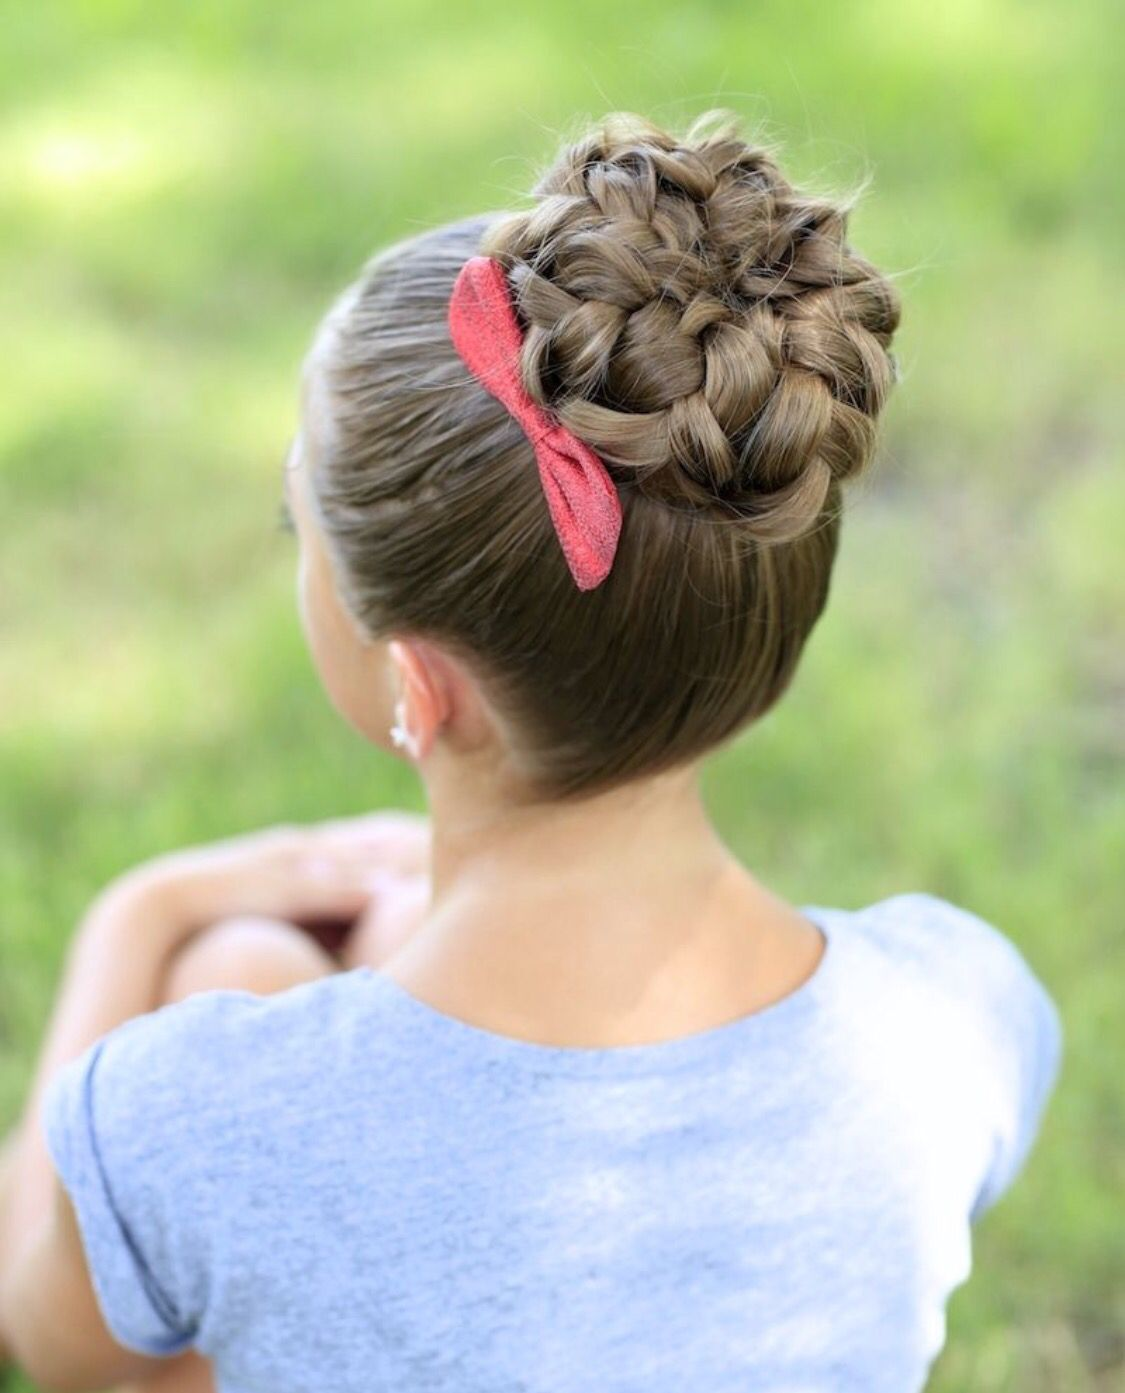 Cute bun for dance recitals or just to get your hair out of your way